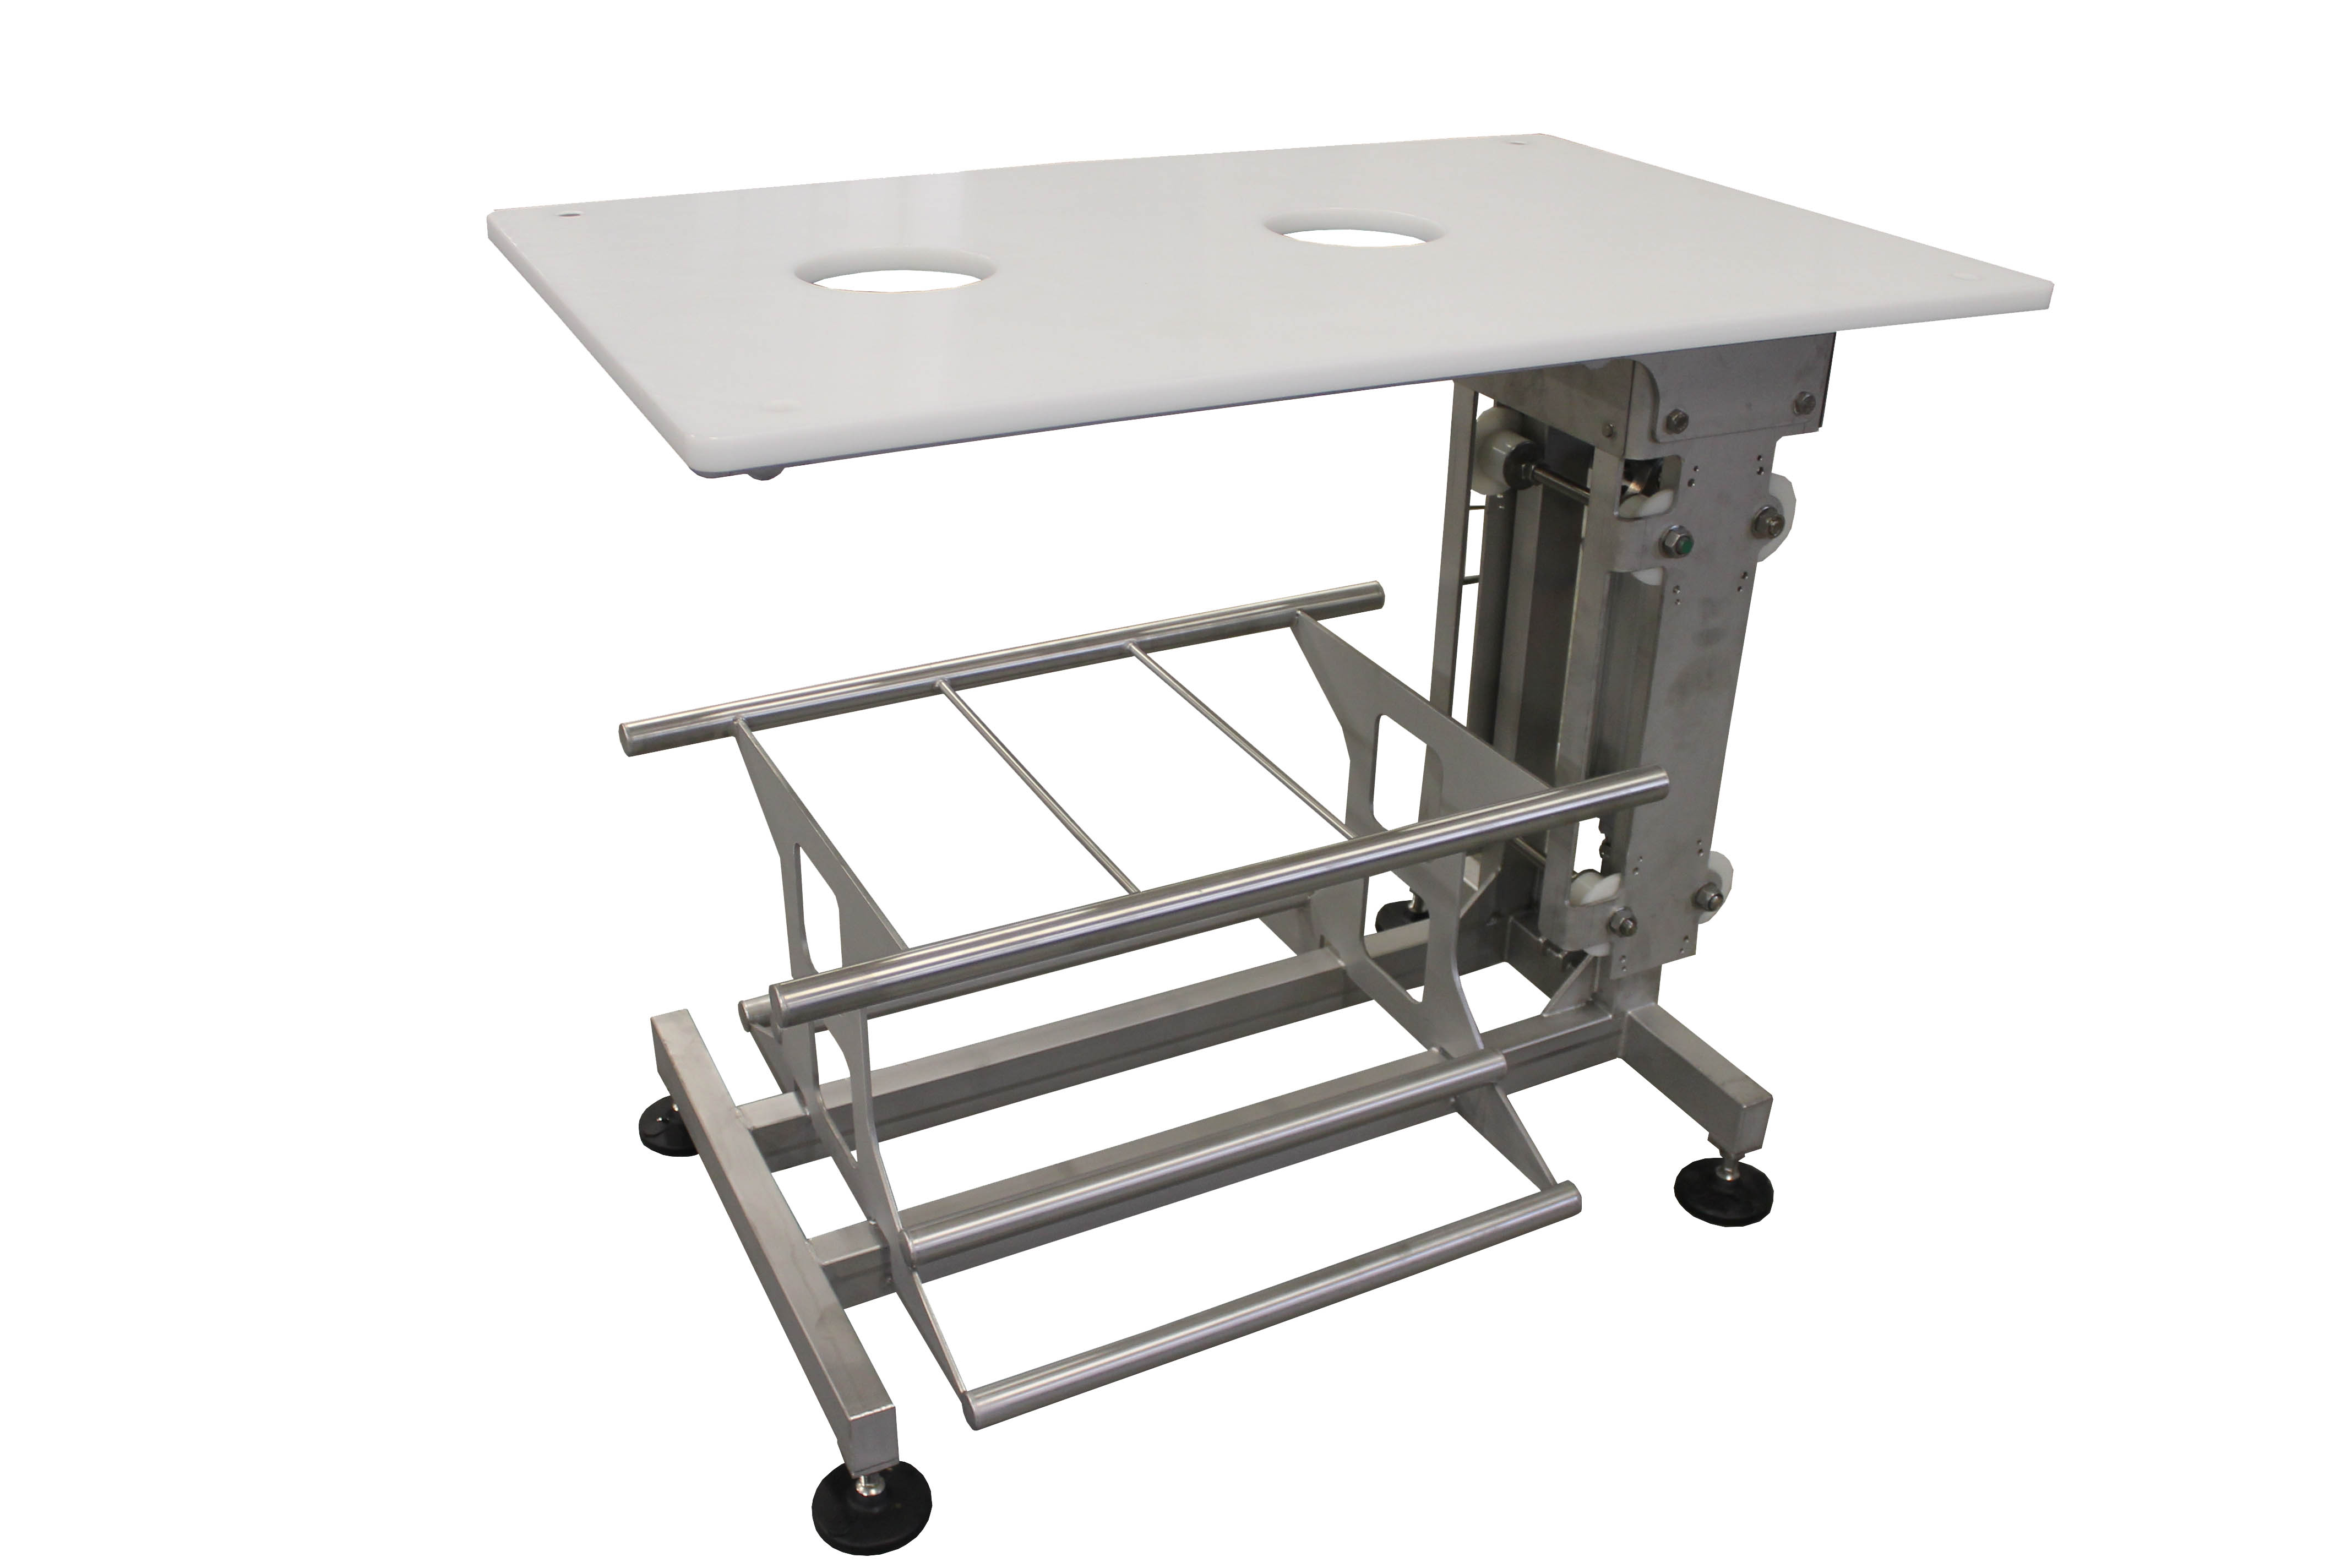 The stainless steel Work table